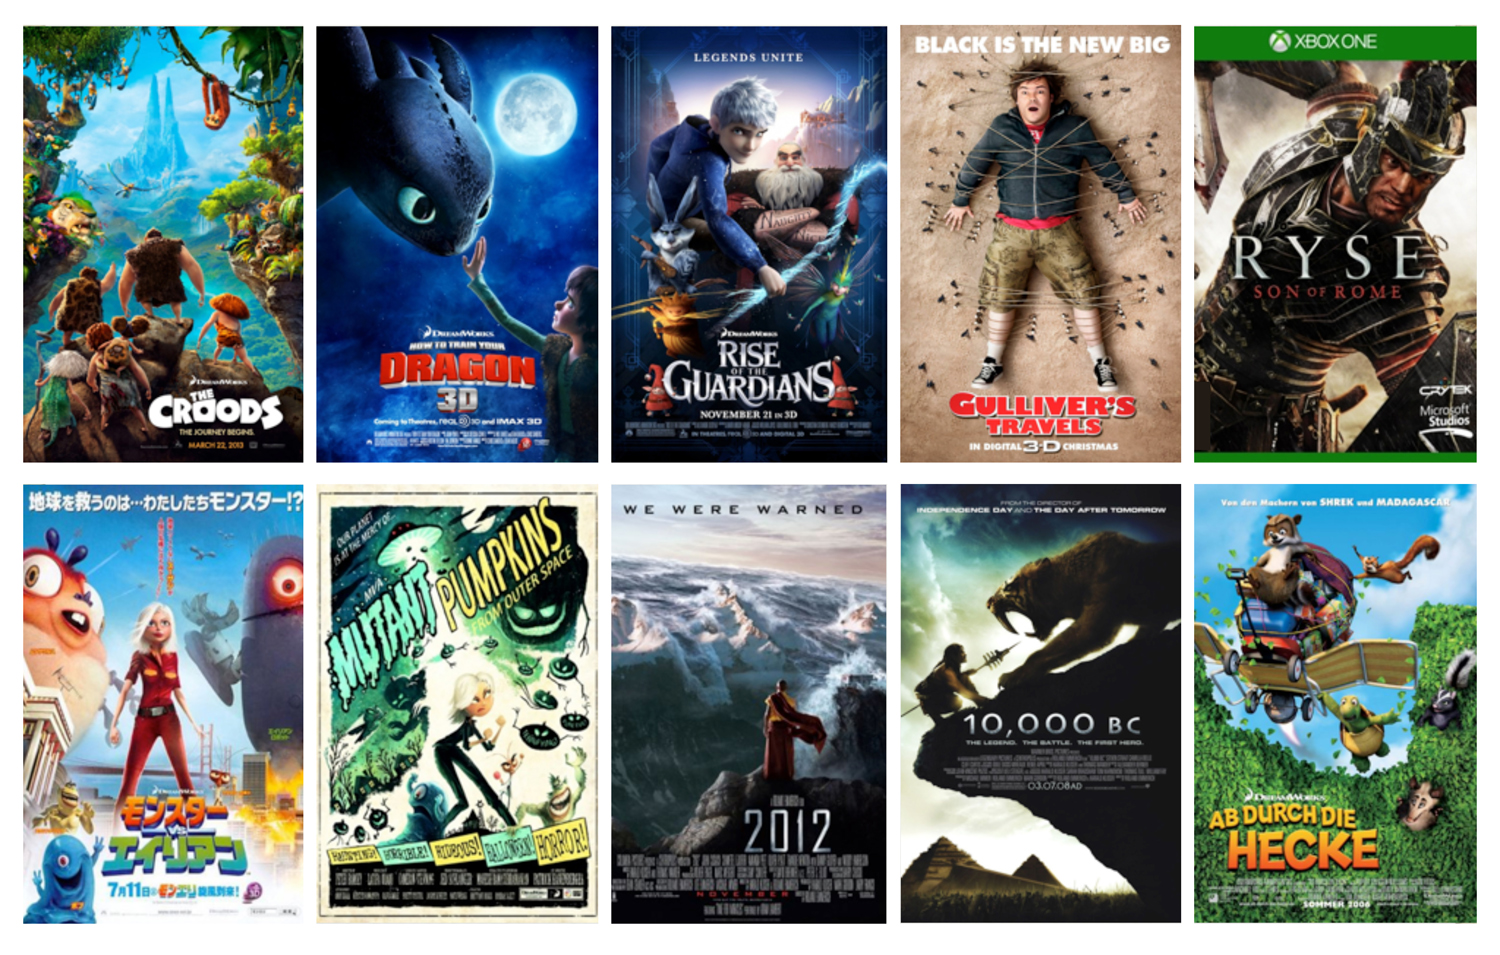 movie_posters2.png